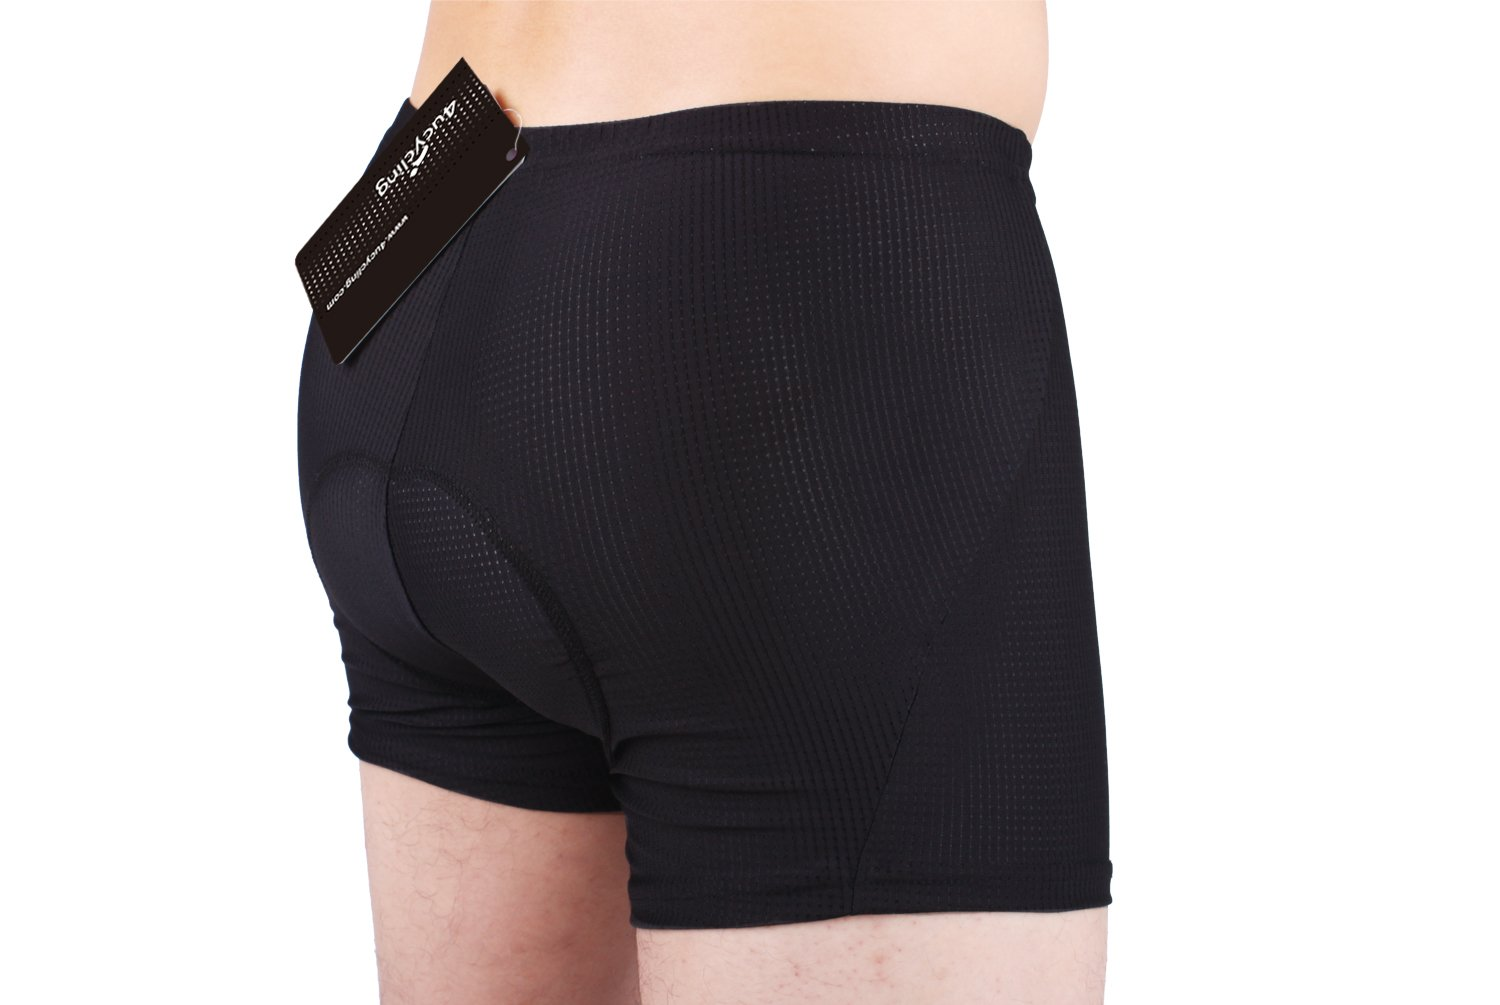 4ucycling Unisex (Men s/Women s) 3D padded Bicycle Cycling Underwear Shorts - L(haimian) Black Updated Sponge Padded